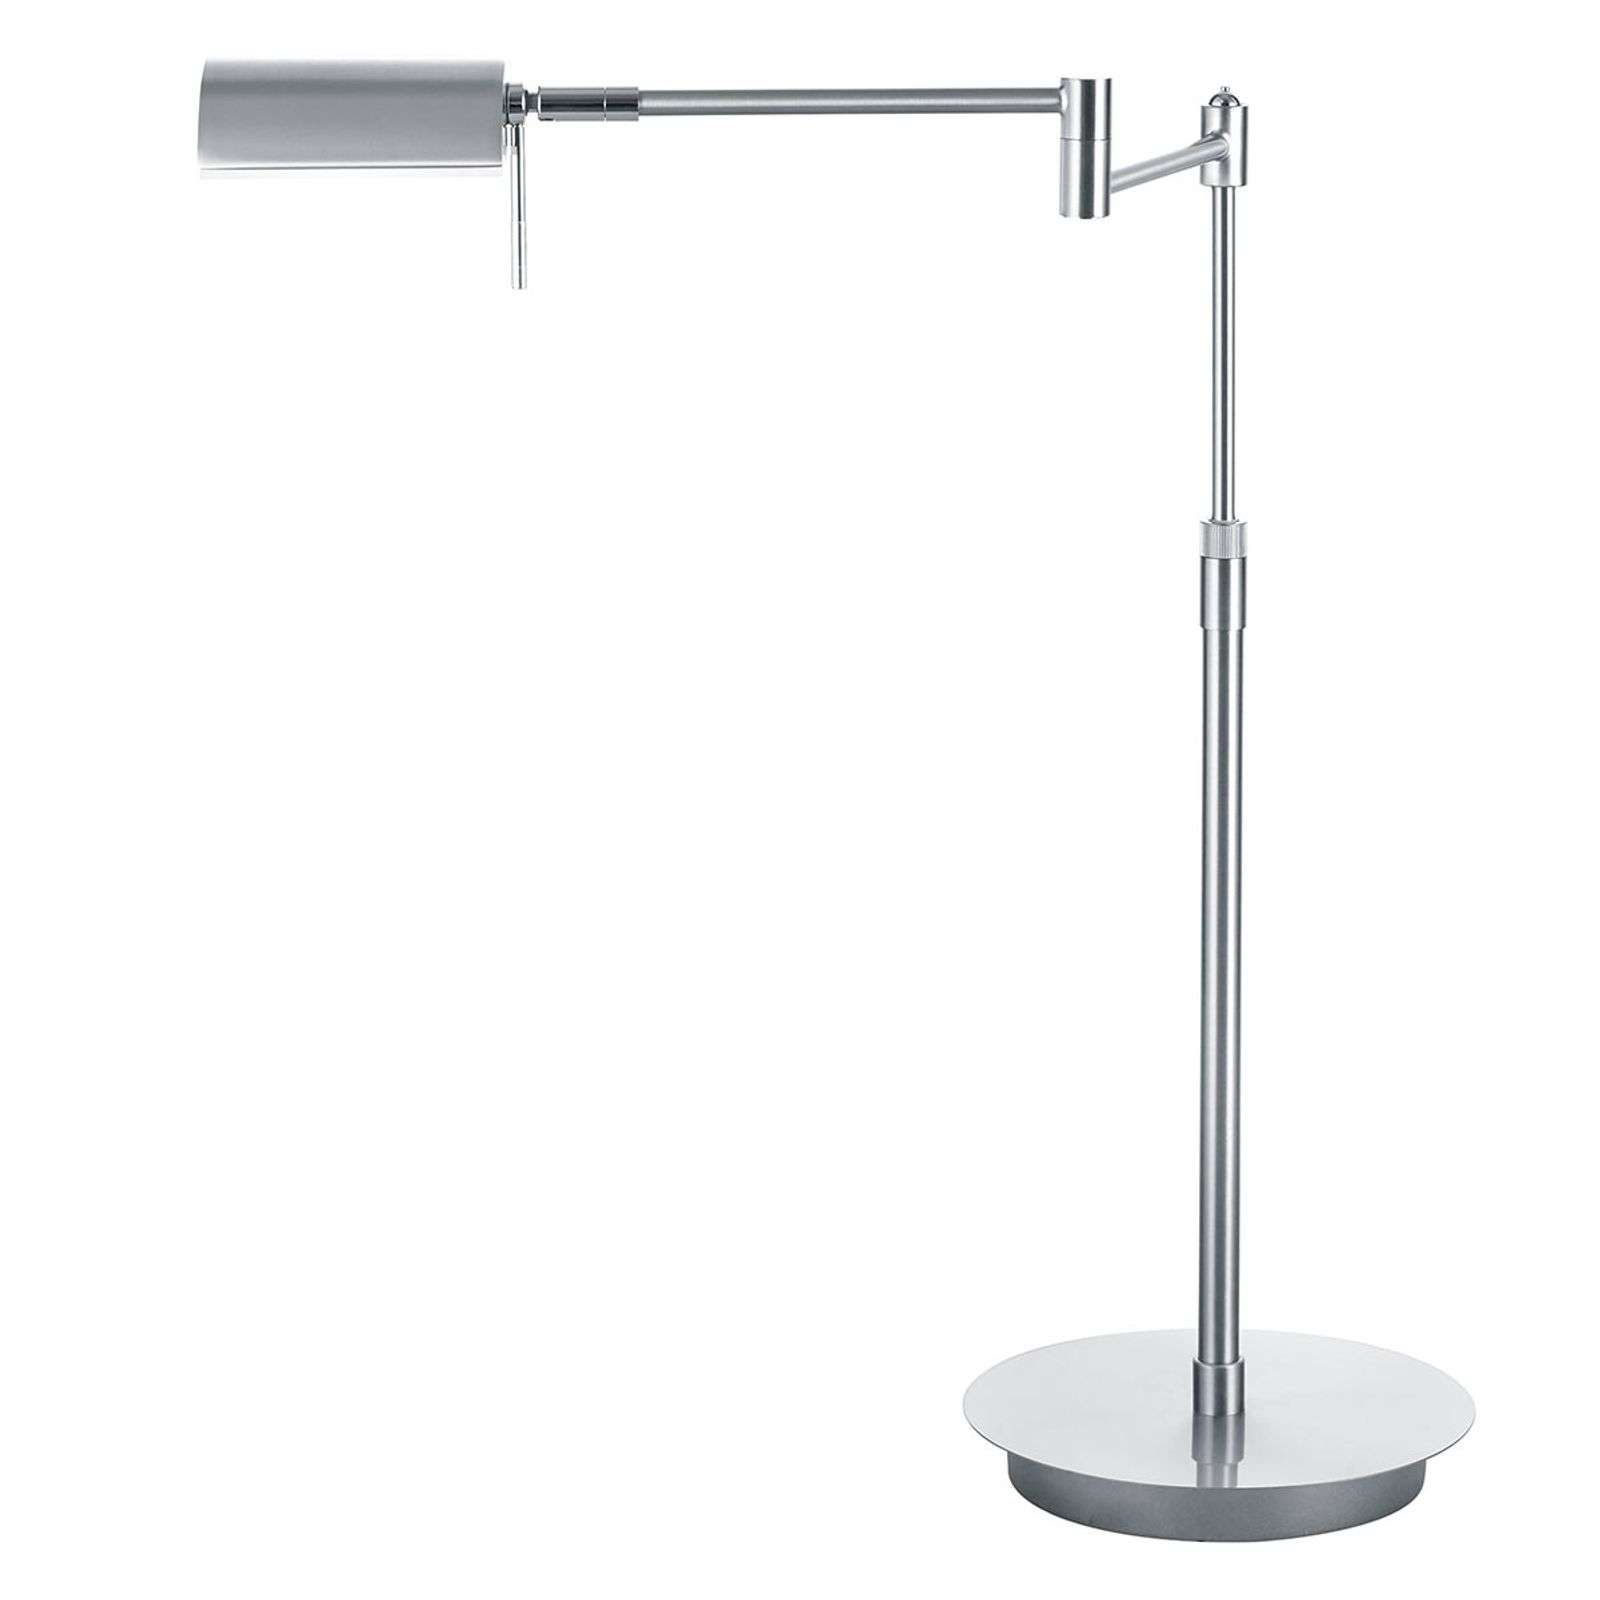 Lampe de bureau LED Graz réglable, nickel